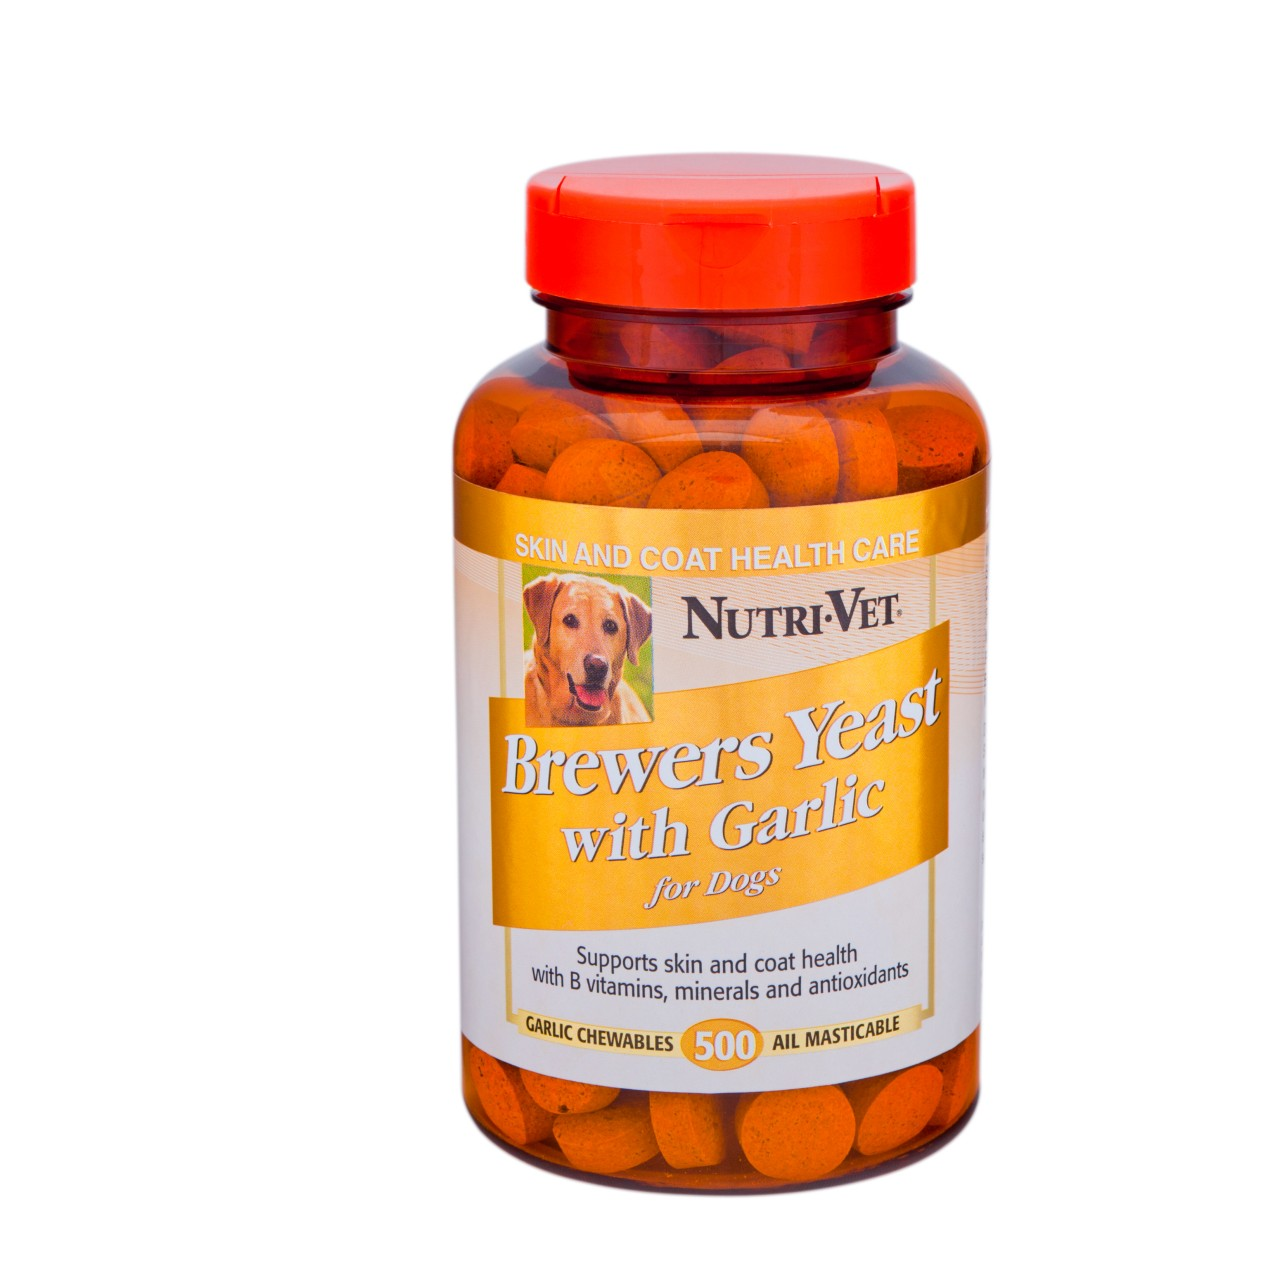 Nutri-Vet Brewer's Yeast with Garlic Chewables